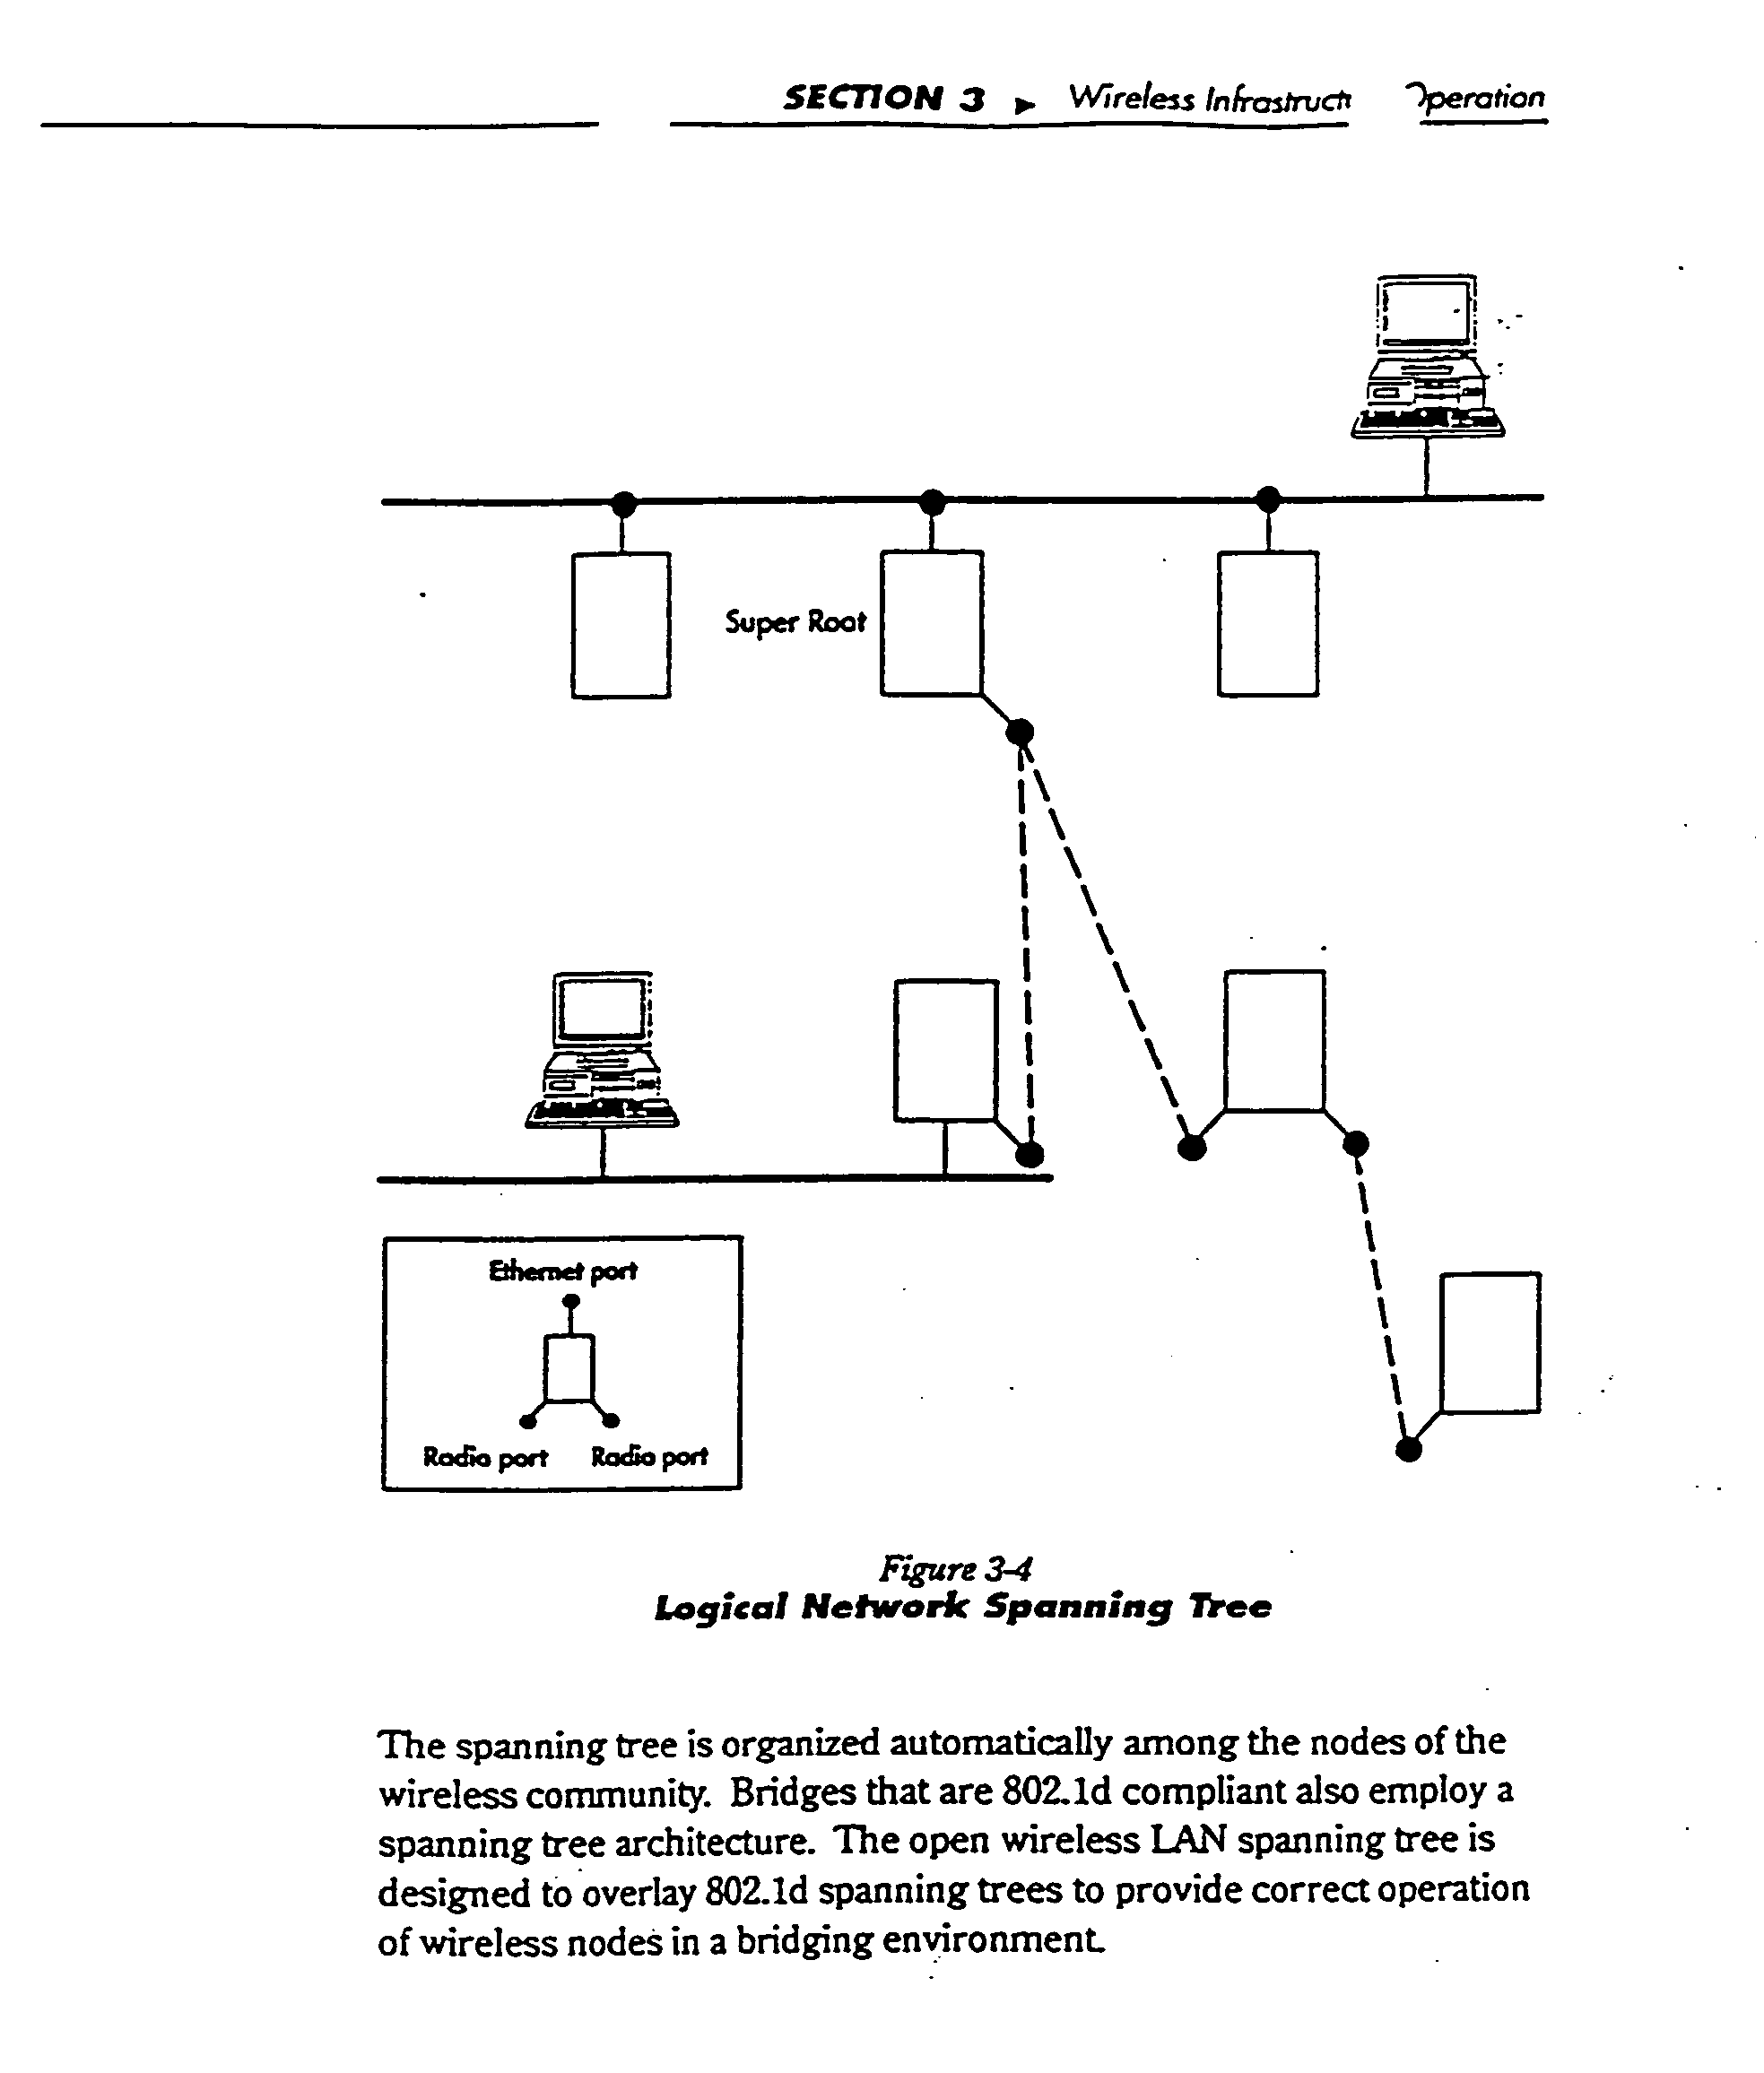 Us20050025129a1 Enhanced Mobility And Address Resolution In A Wireless Network Architecture Diagram Figure 20050203 P00059